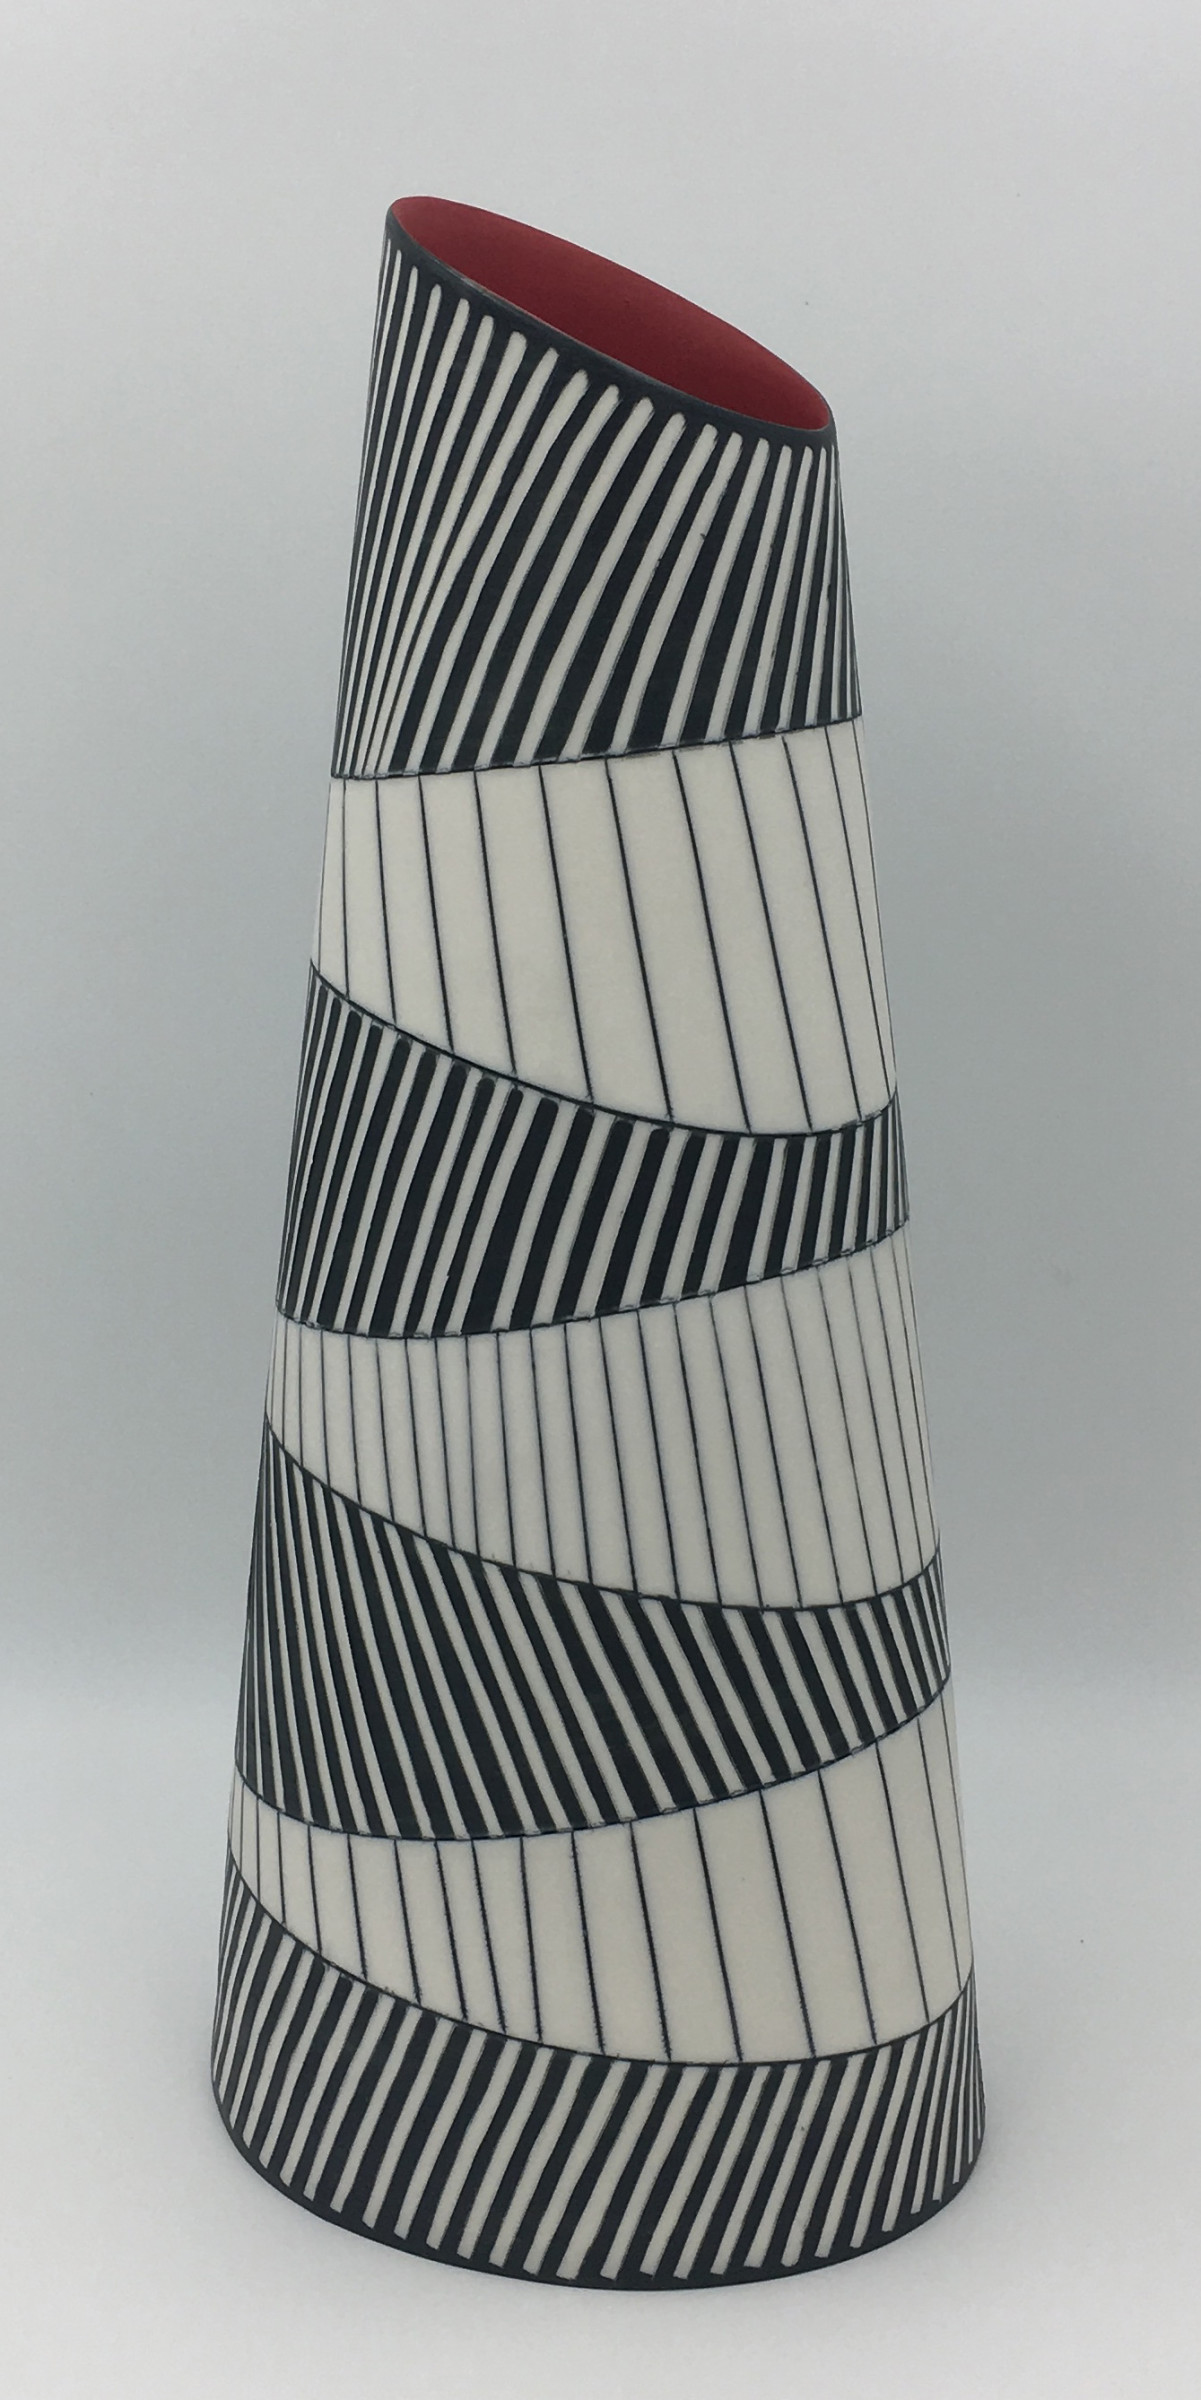 "<span class=""link fancybox-details-link""><a href=""/artists/195-lara-scobie/works/6512-lara-scobie-tall-oval-vase-with-chevron-pattern-2019/"">View Detail Page</a></span>Lara Scobie   Tall Oval Vase with Chevron Pattern , 2019   Porcelain  <div class=""copyright_line"">Own Art: £82 x 10 Months, 0% APR</div>"